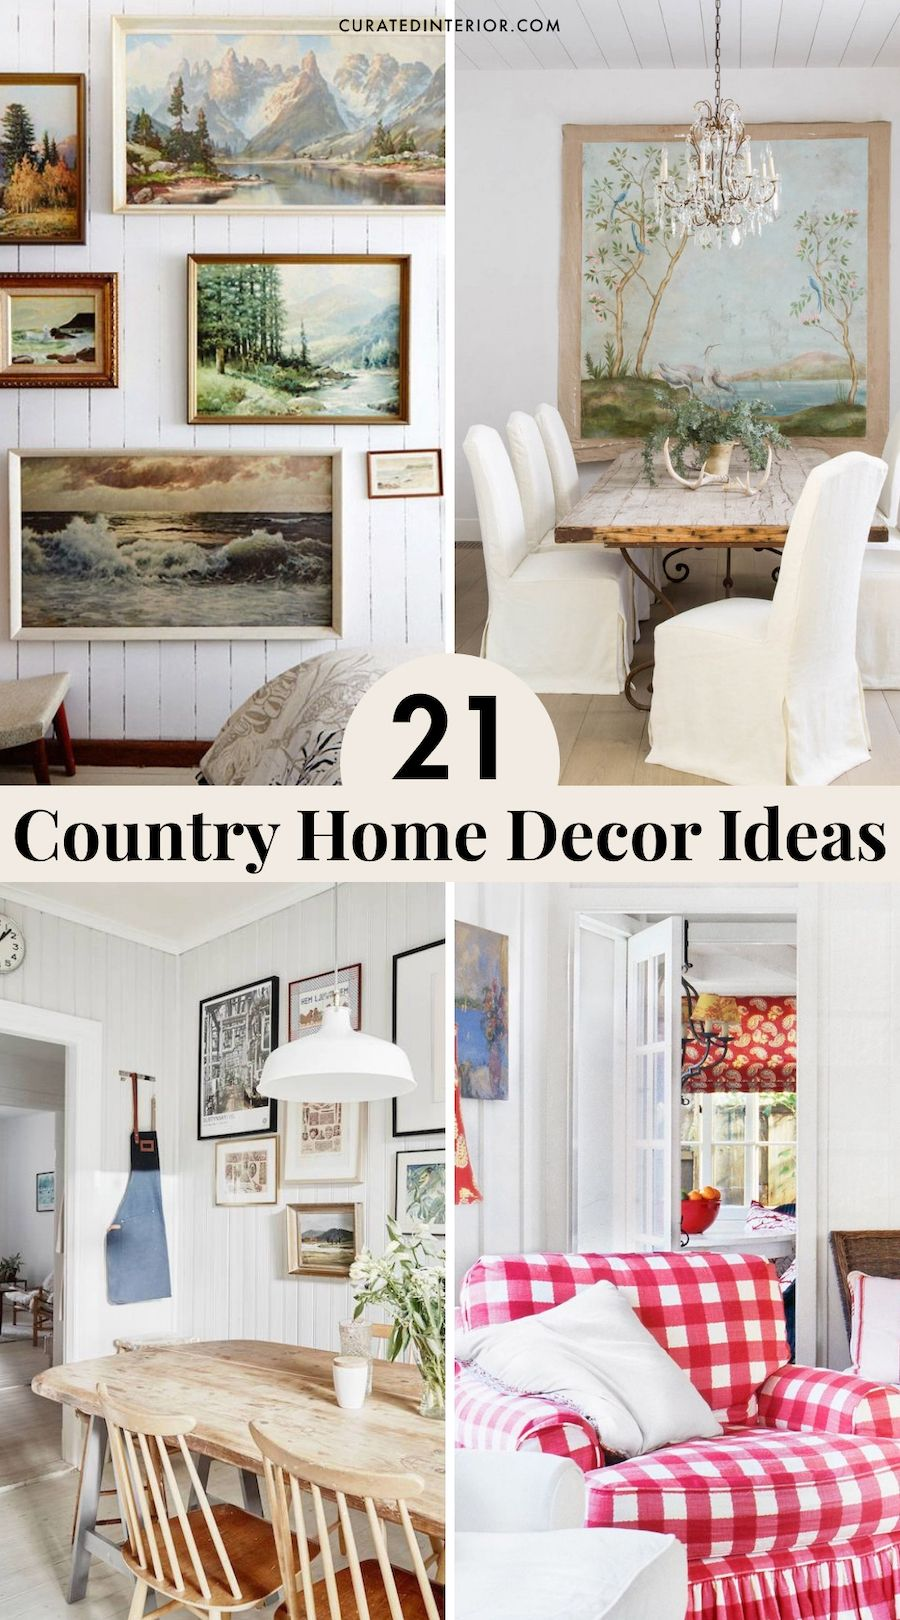 21 Country Home Decor Ideas